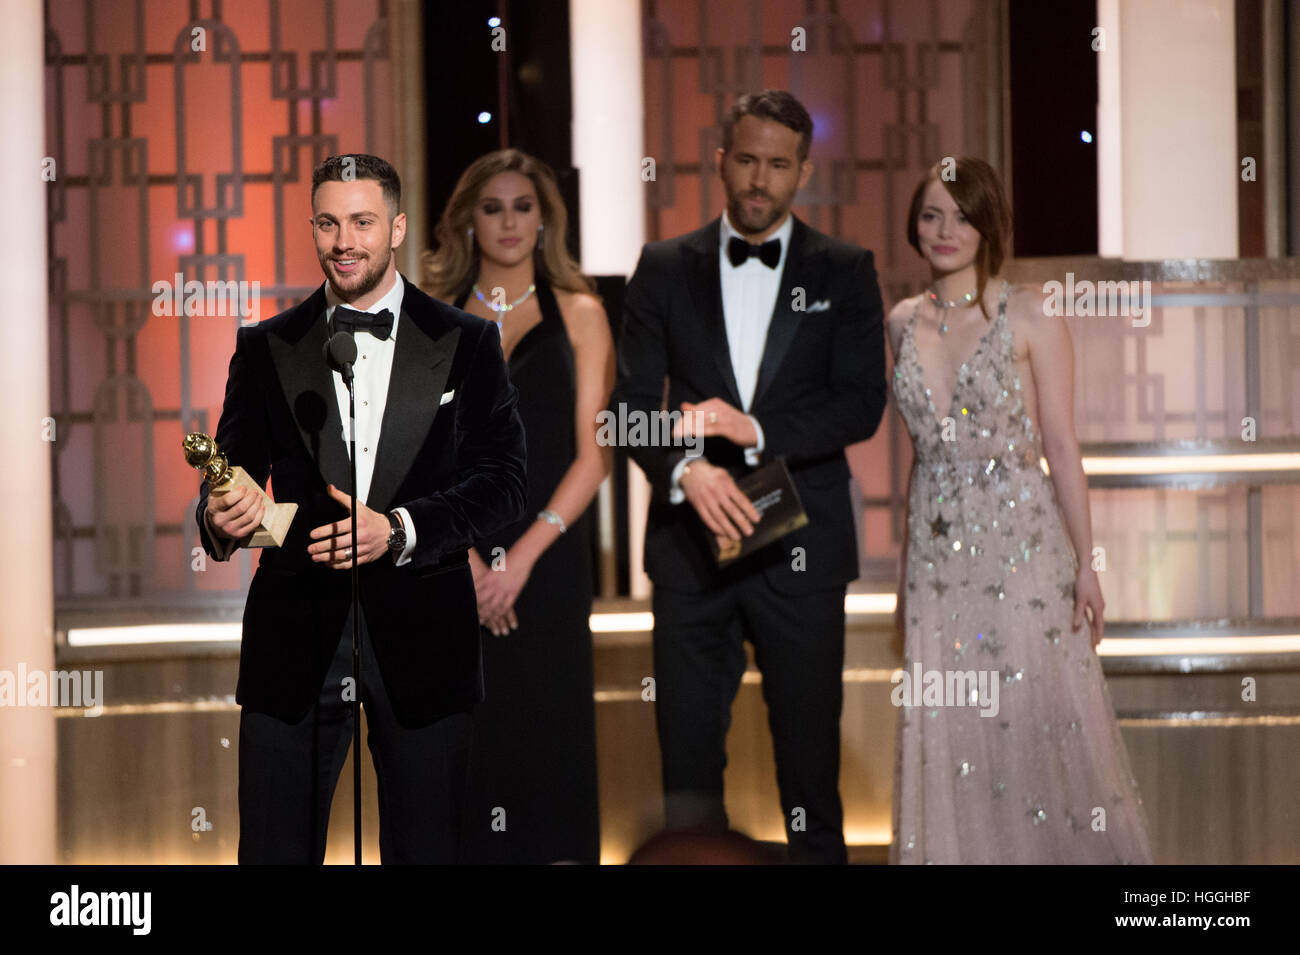 Beverly Hills, CA, USA. 8 janvier, 2017. Aaron Taylor-Johnson. 74e Golden Globes Awards annuel tenu à l'hôtel Photo Stock